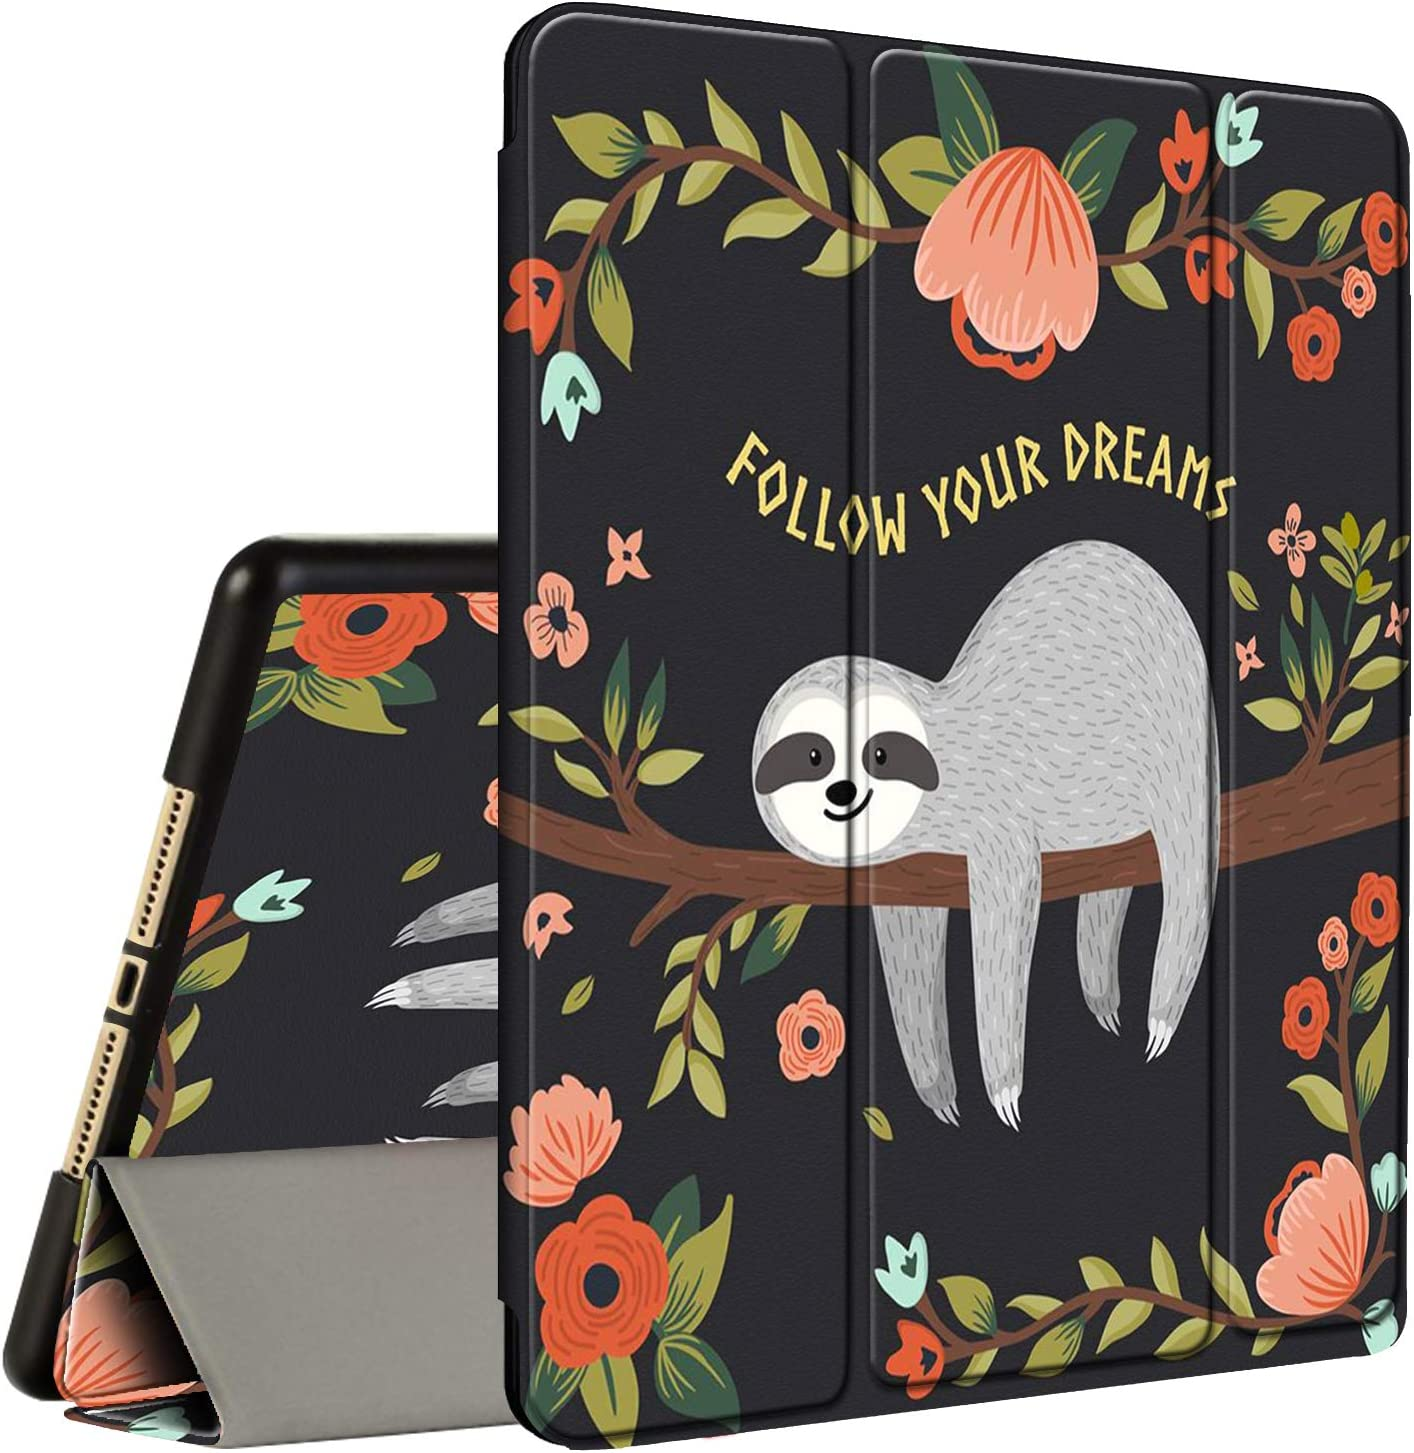 iPad 10.2 Case (2020/2019) 8th/7th Generation ipad Case with Pencil Holder, AMOOK Tri-Fold Stand Smart Protective Cover Case for New Apple iPad 8/7 Gen 10.2 inch-Cute Sloth